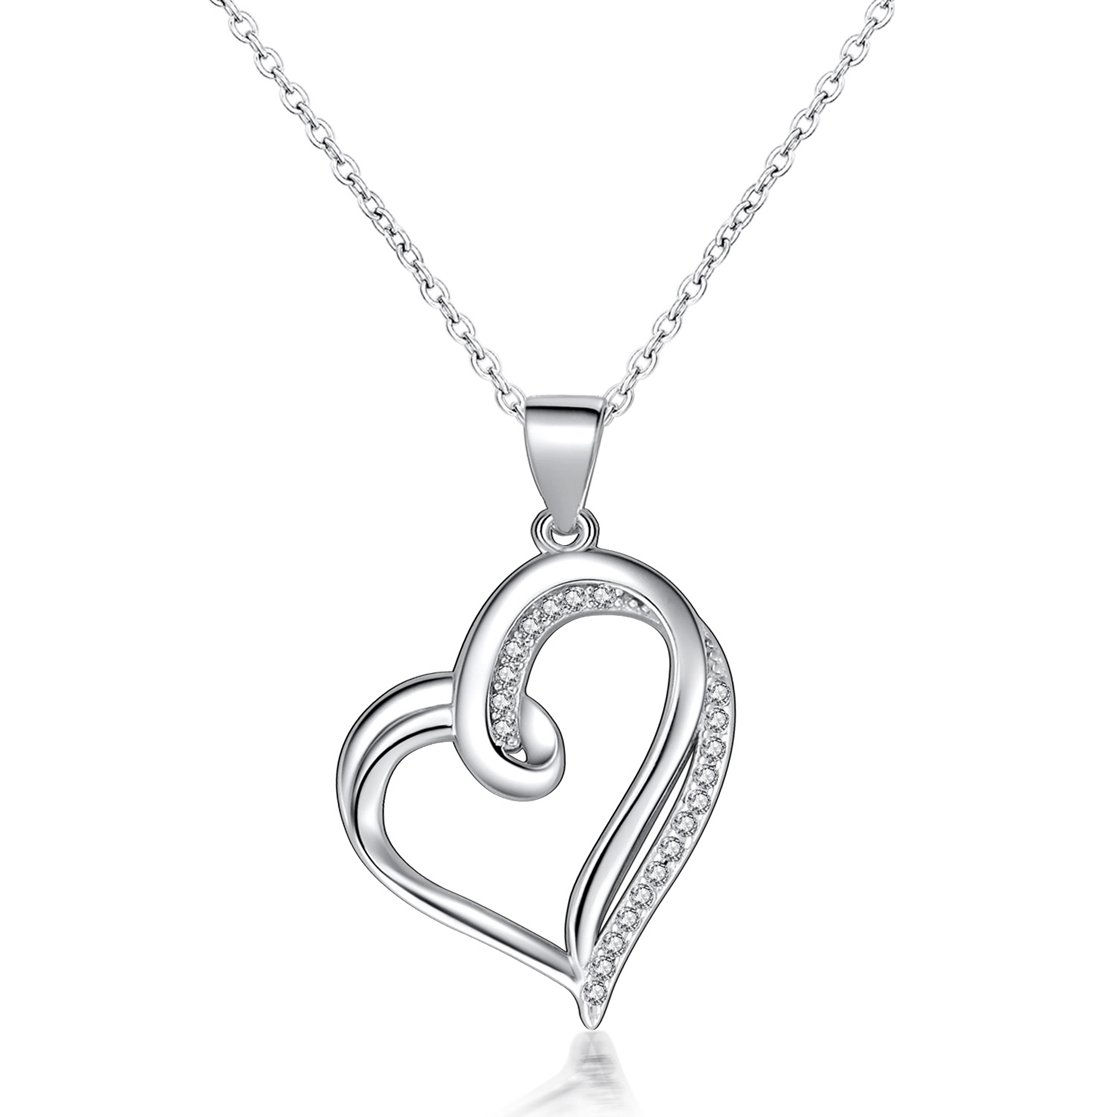 Fine Jewelry Sterling Silver Heart in Love Charm Pendant Necklace, 18 inches